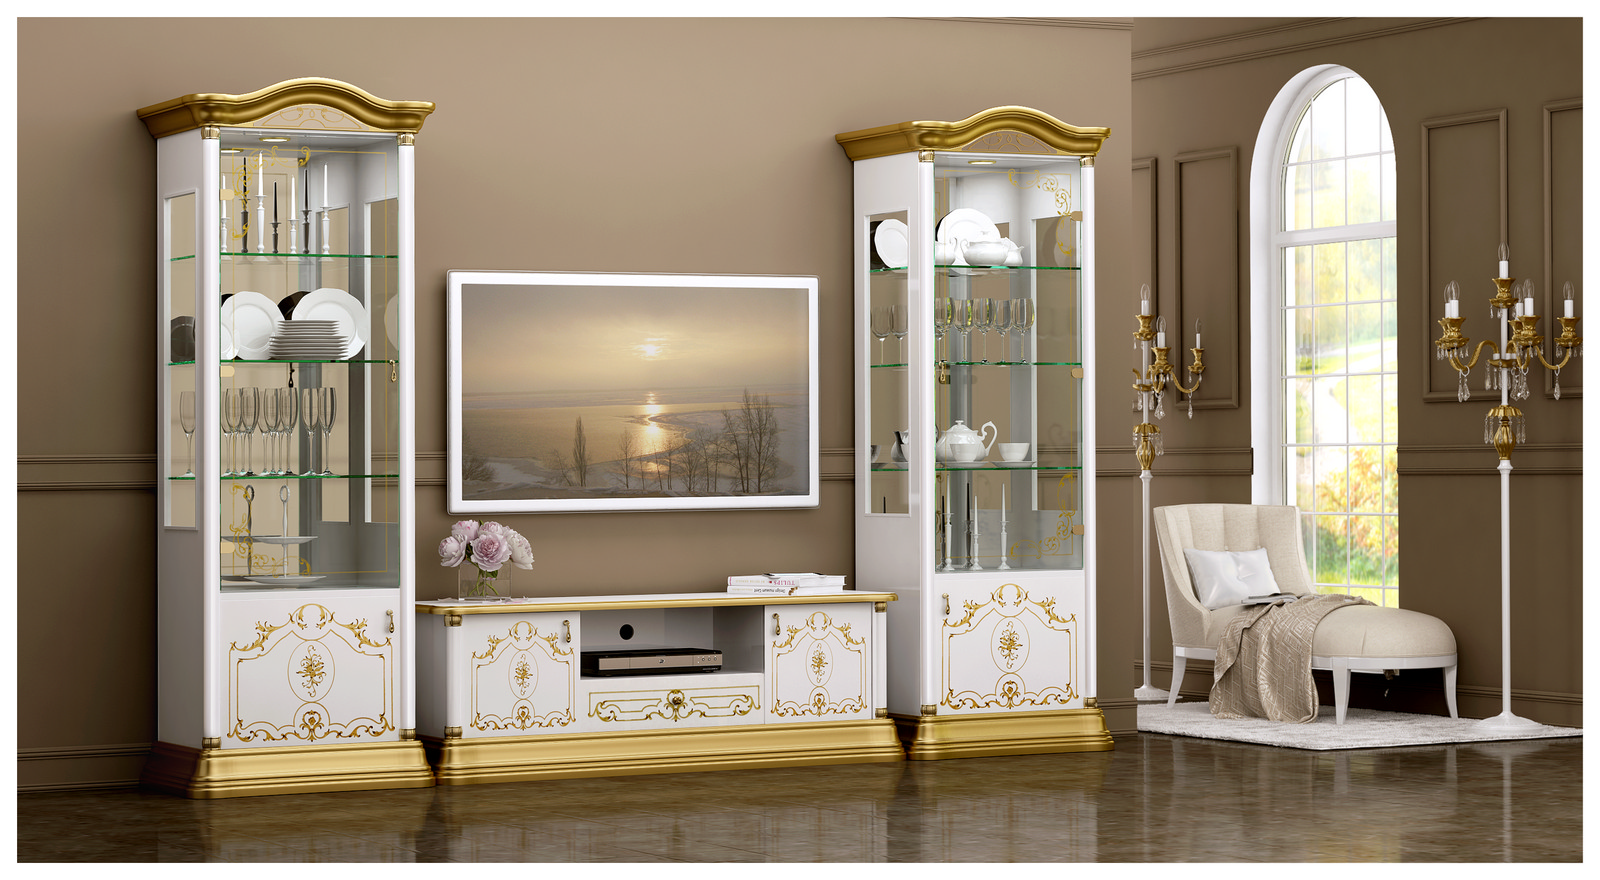 wohnwand rozza wei gold vitrinen tv schrank barock. Black Bedroom Furniture Sets. Home Design Ideas